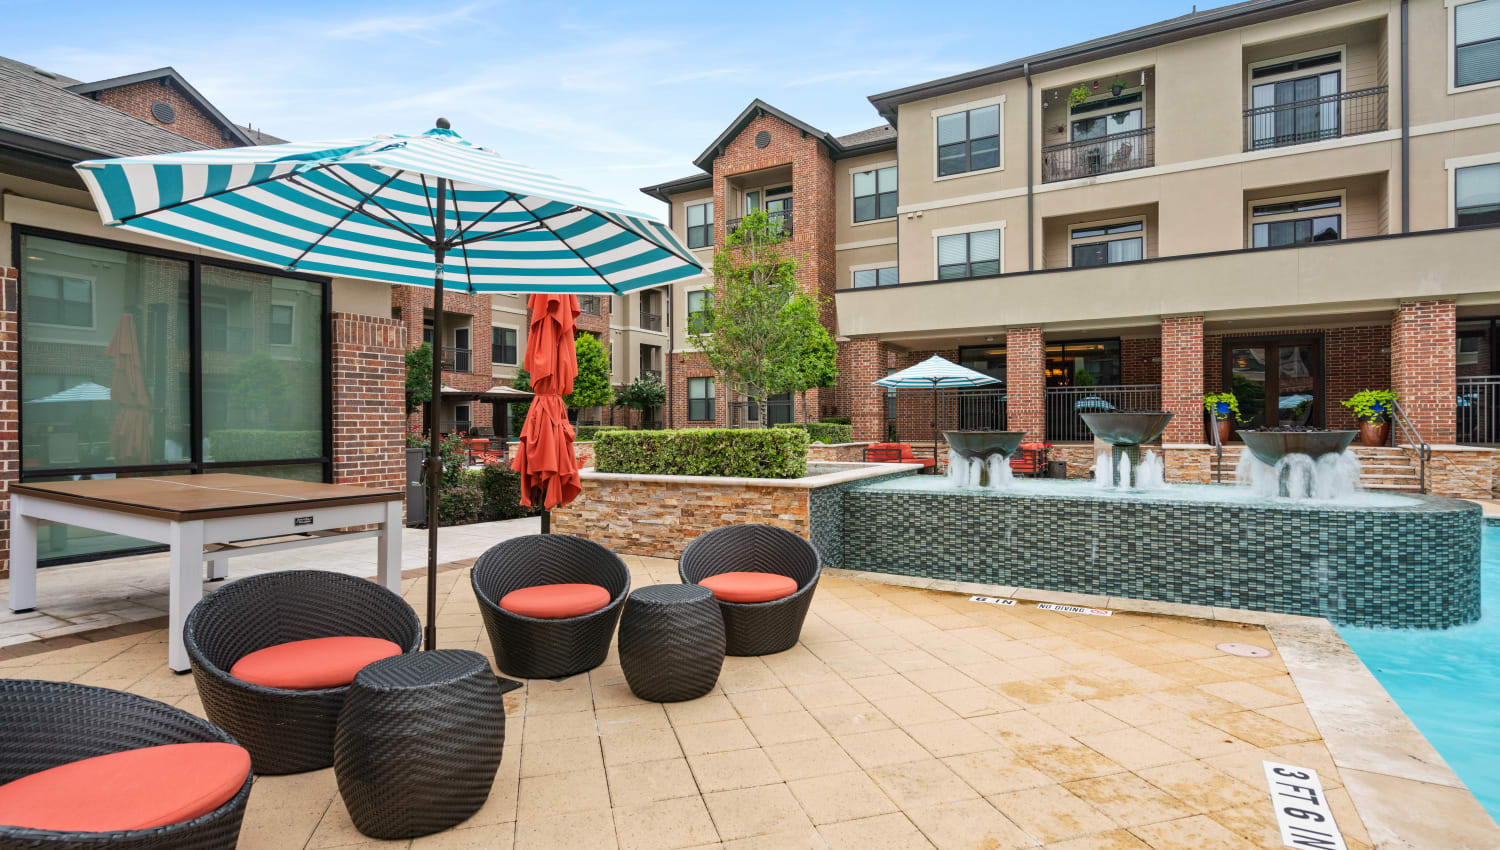 Outdoor lounge near the pool with a fountain at Olympus Sierra Pines in The Woodlands, Texas